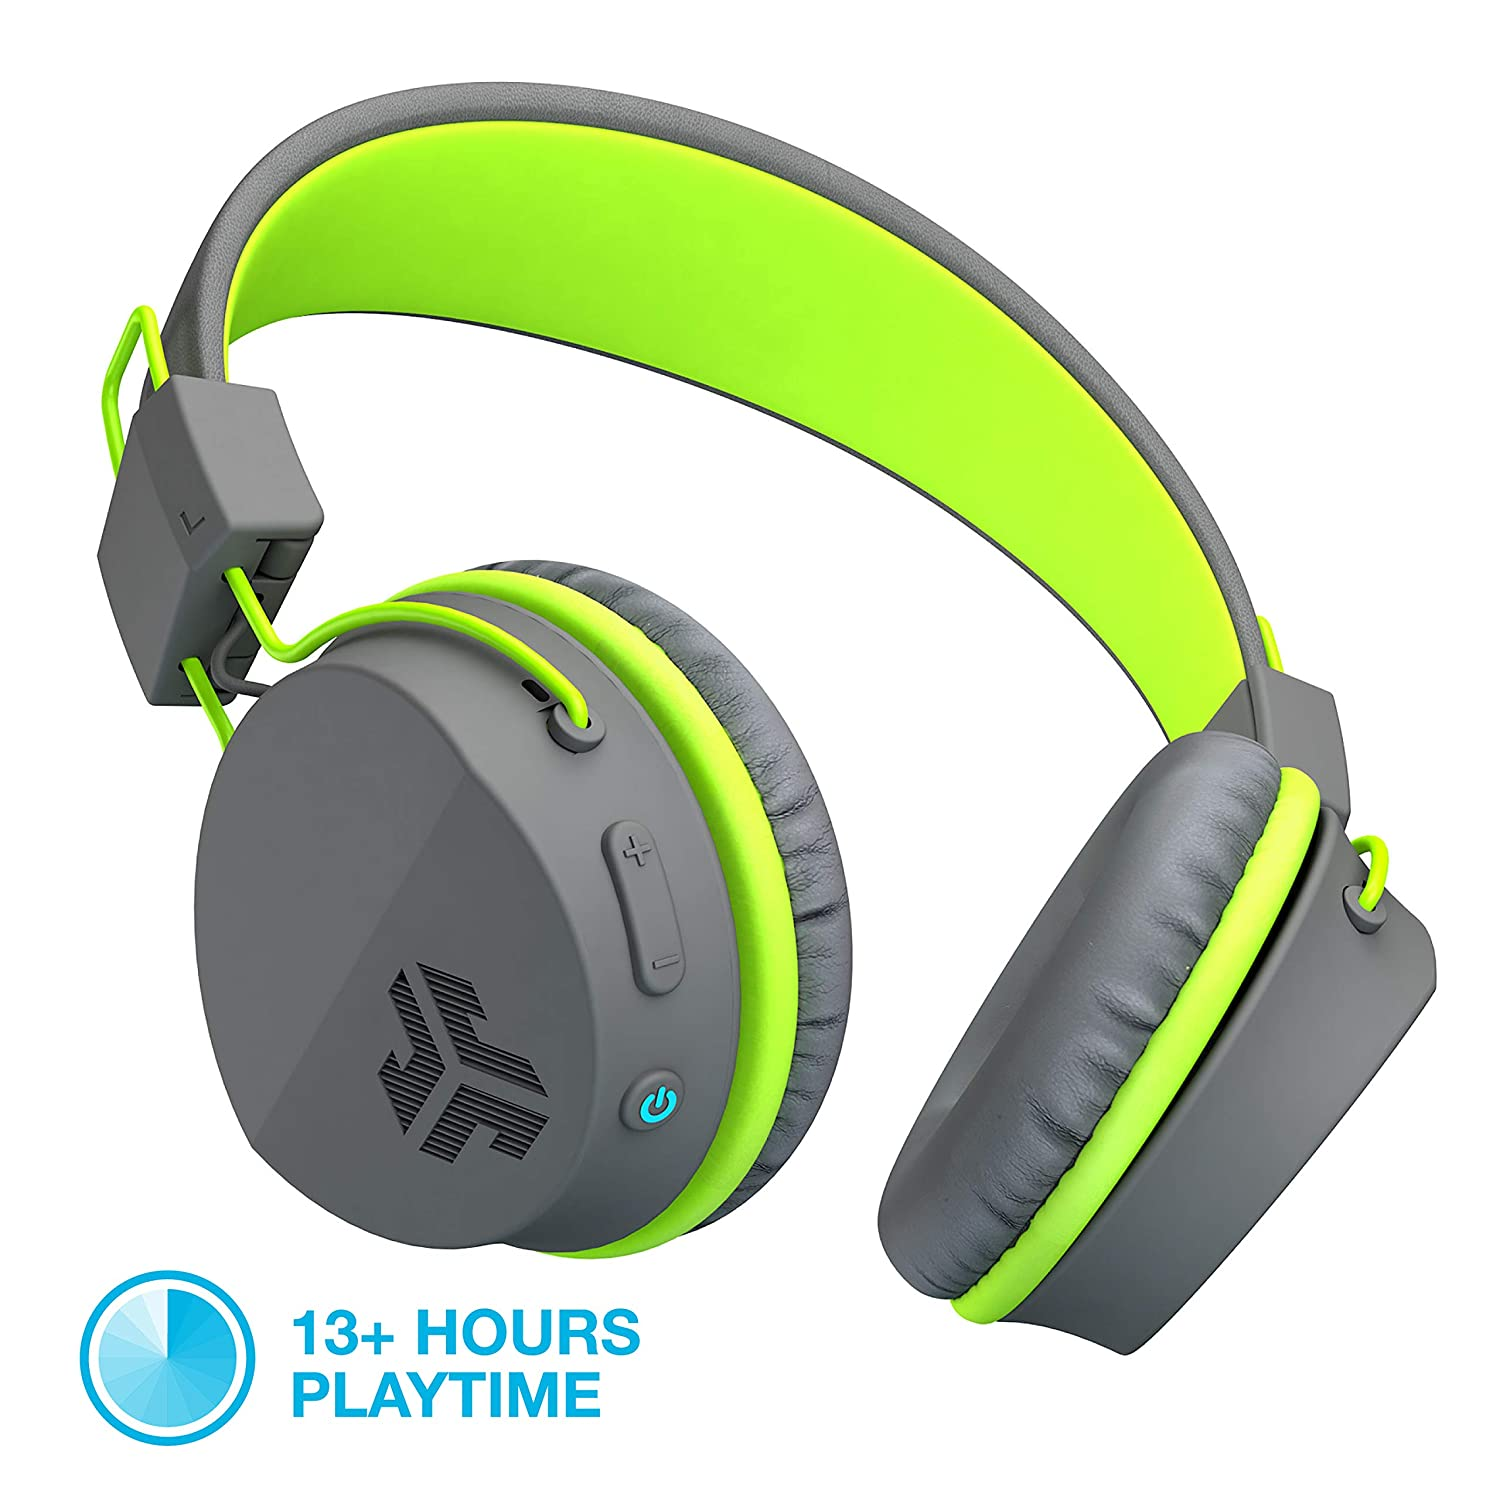 0ba41d2f1d0 JLab Audio Neon Bluetooth Folding On-Ear Headphones | Wireless Headphones |  13 Hour Bluetooth Playtime | Noise Isolation | 40mm Neodymium Drivers | C3  Sound ...